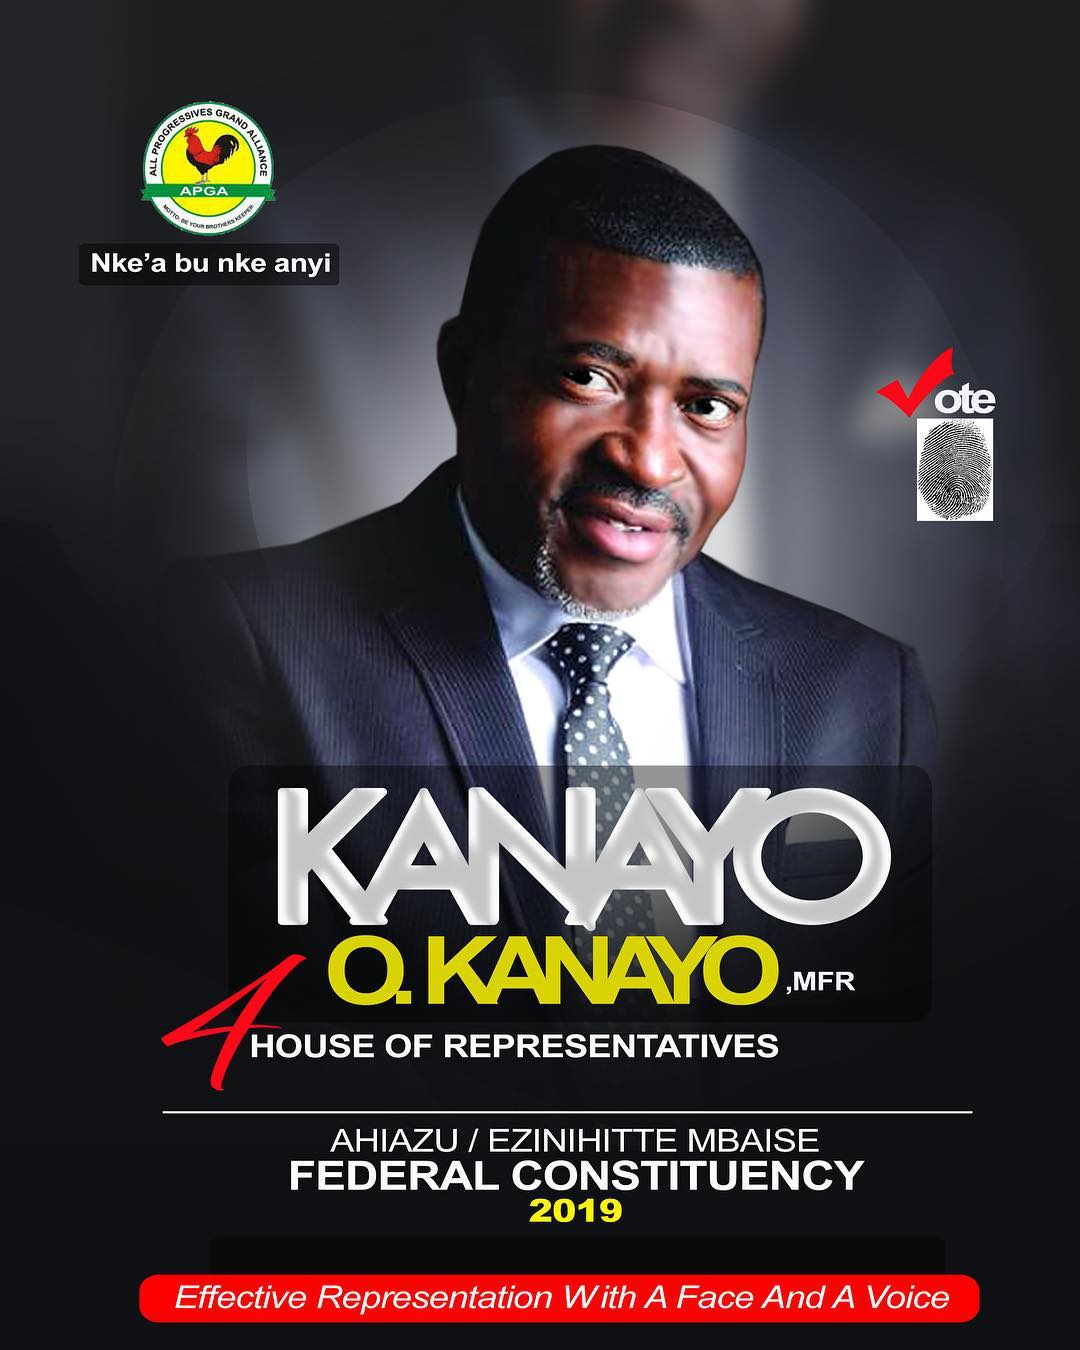 Veteran Nollywood Actor Kanayo O Kanayo Unveils Campaign Posters For 2019 Elections